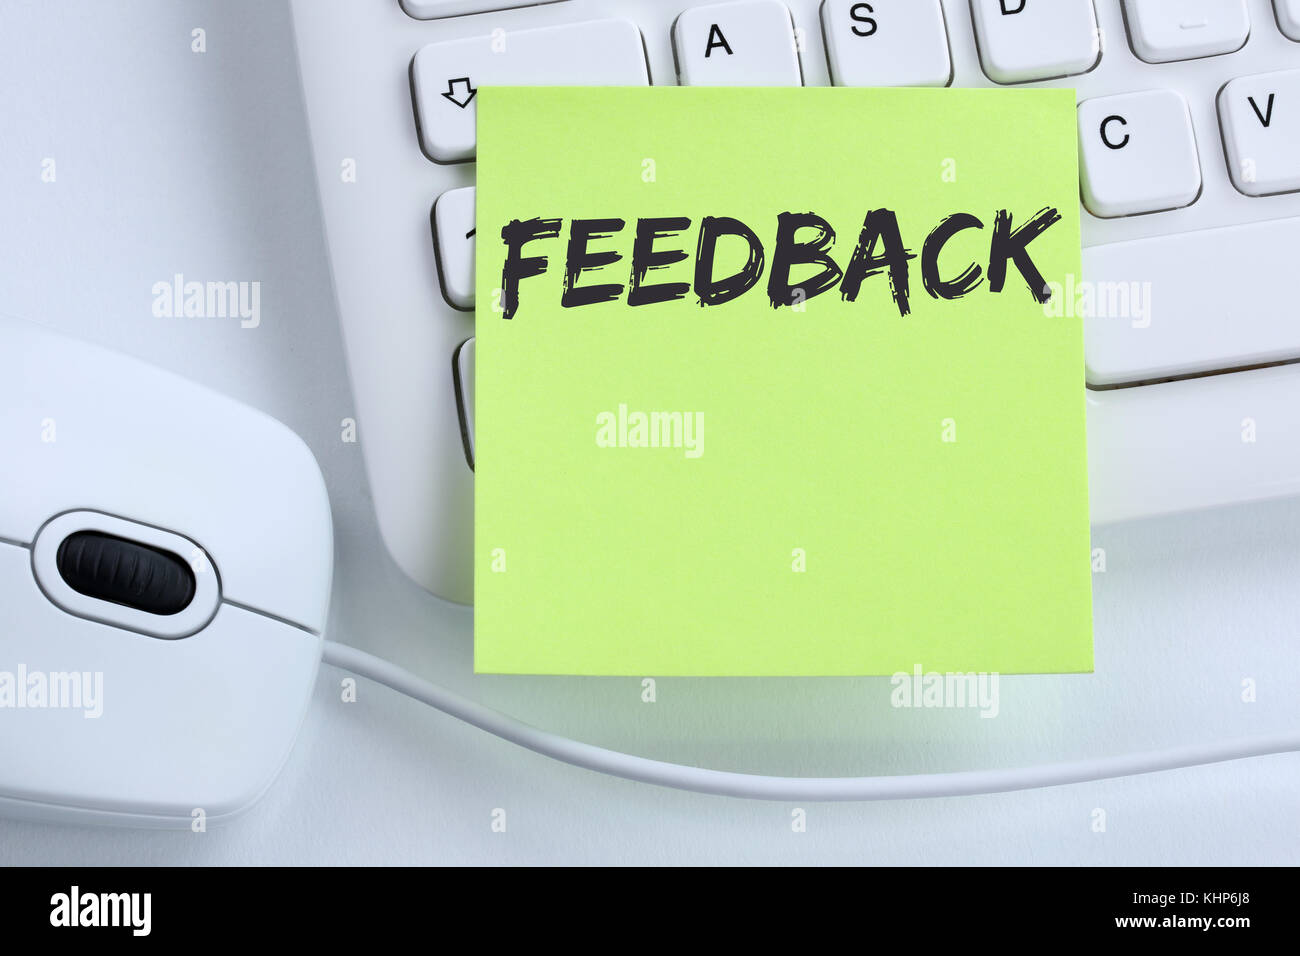 Feedback contact customer service opinion survey review business concept mouse computer keyboard - Stock Image